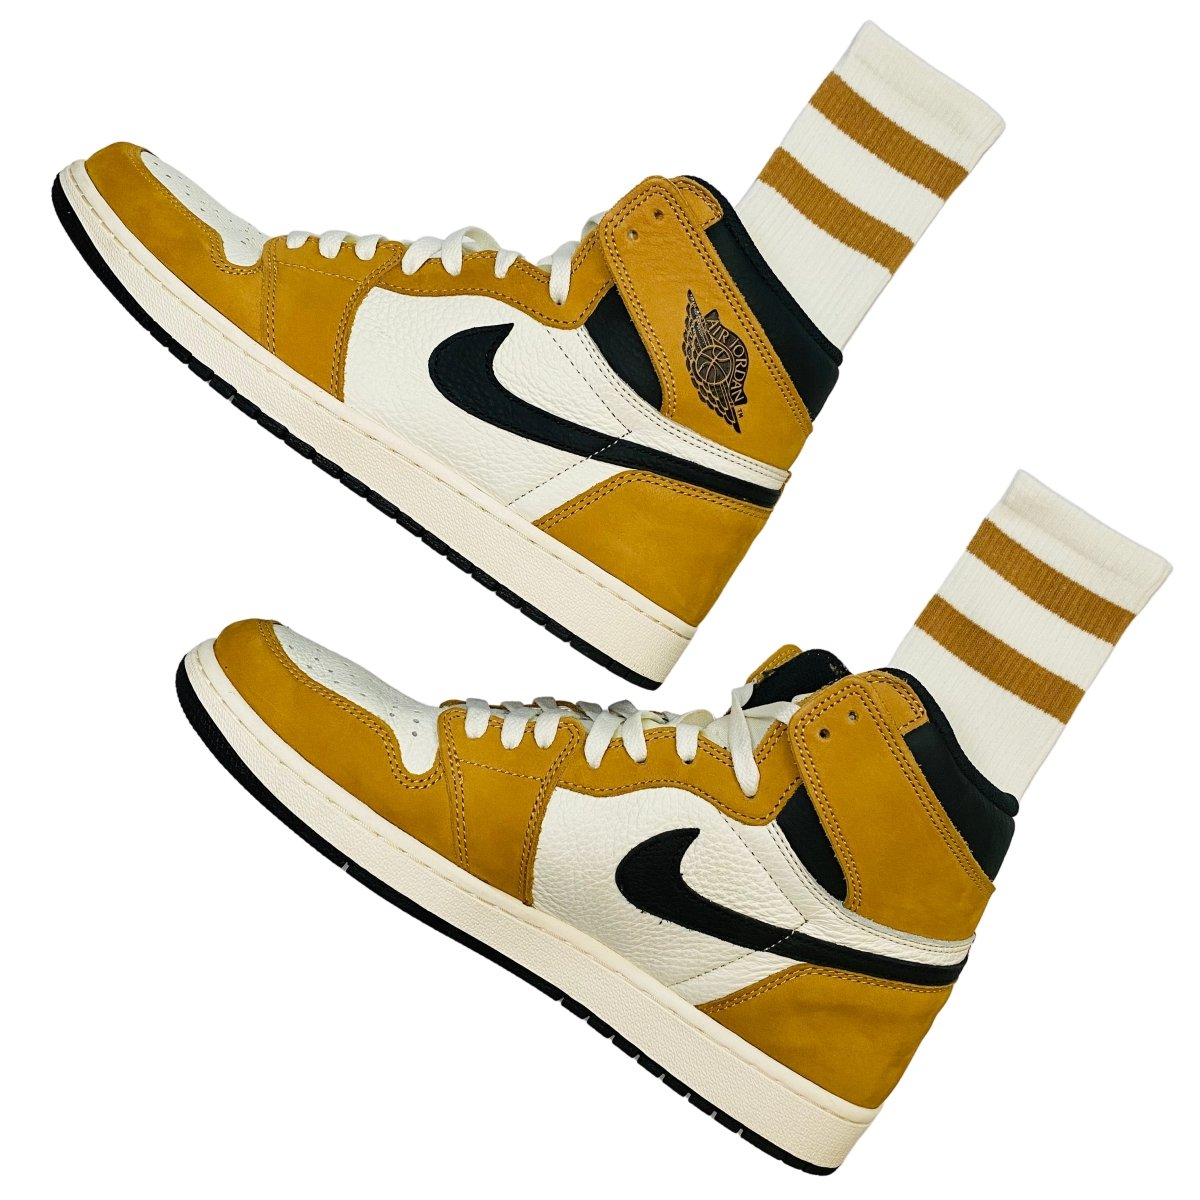 Where to buy crew socks for the NIKE Air Jordan 1 Rookie of the Year? | Slickies